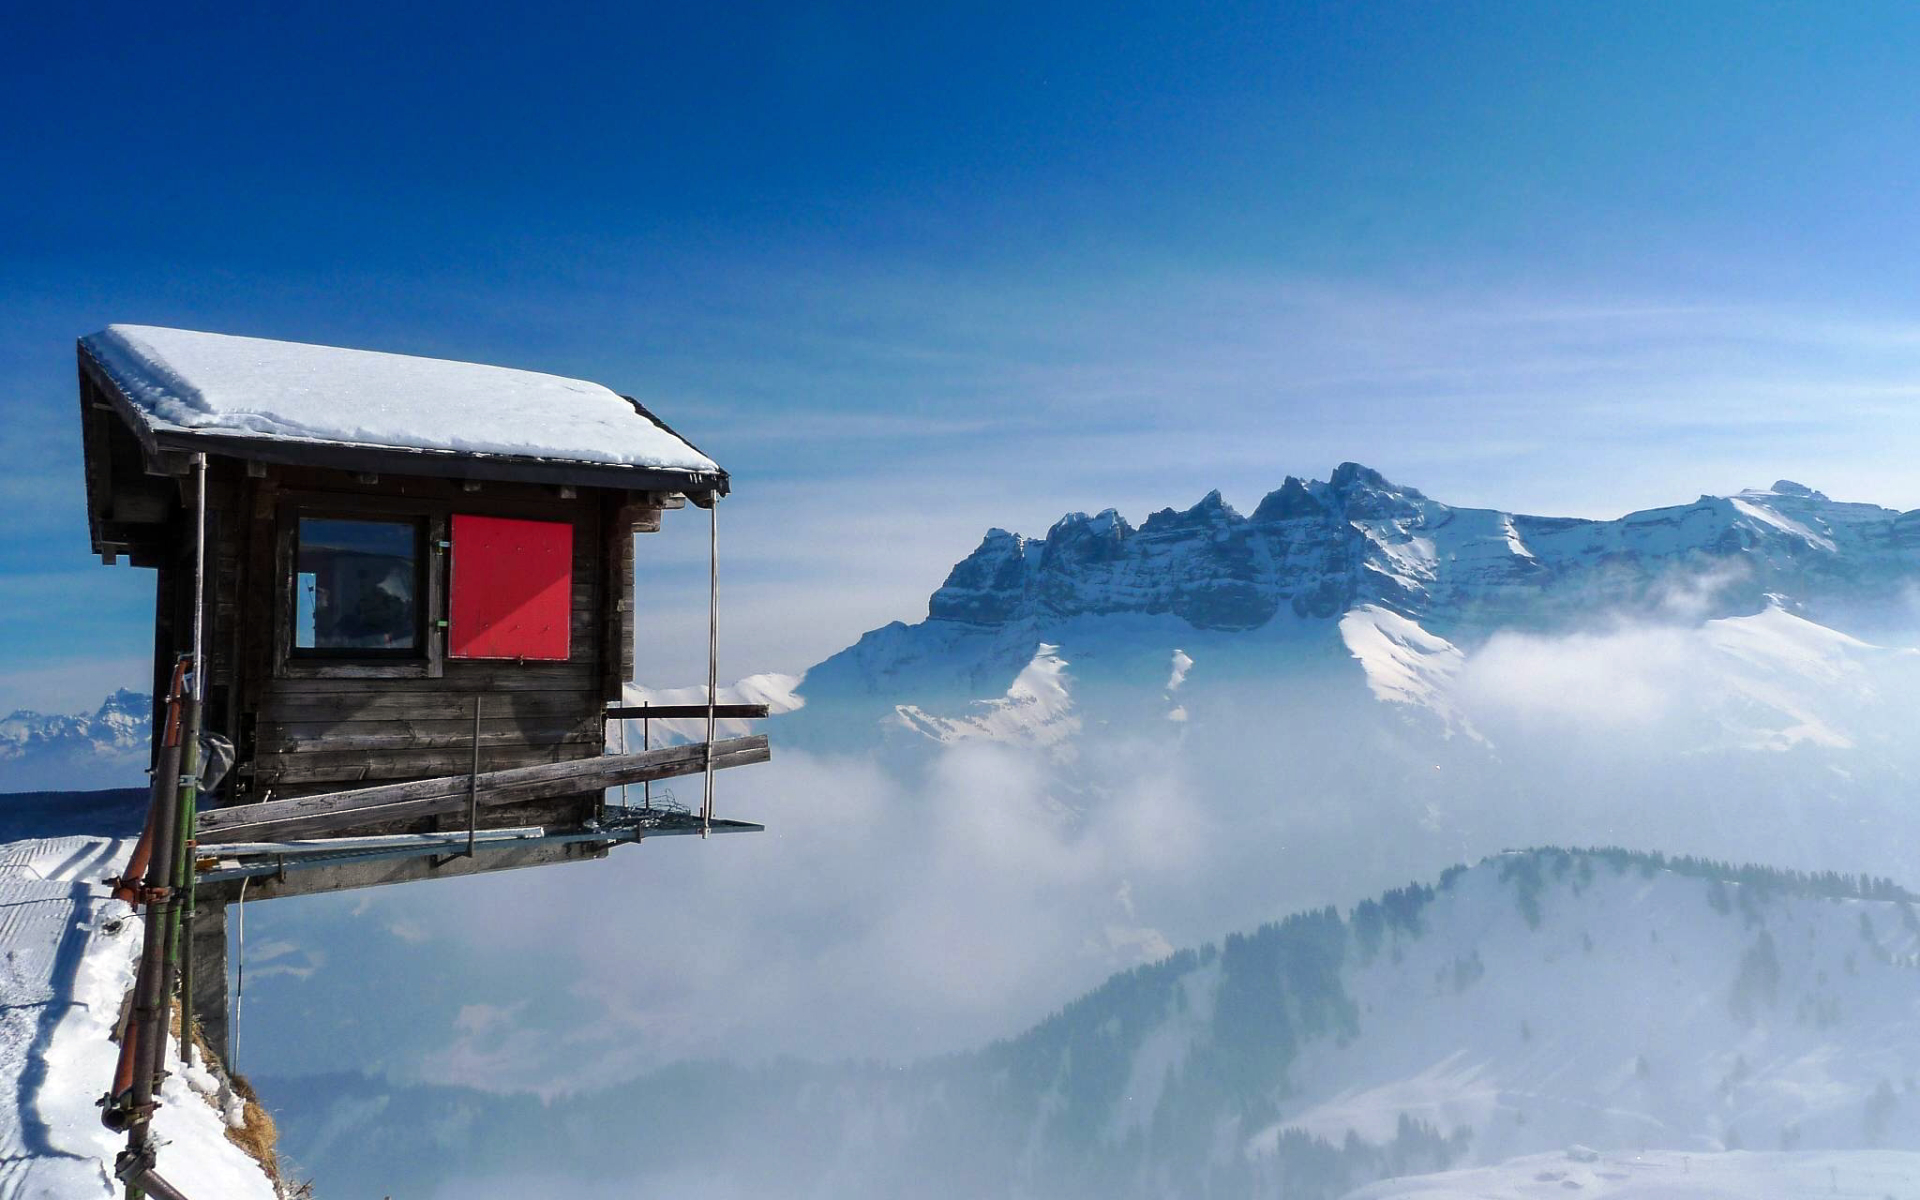 Cabin over mountain edge